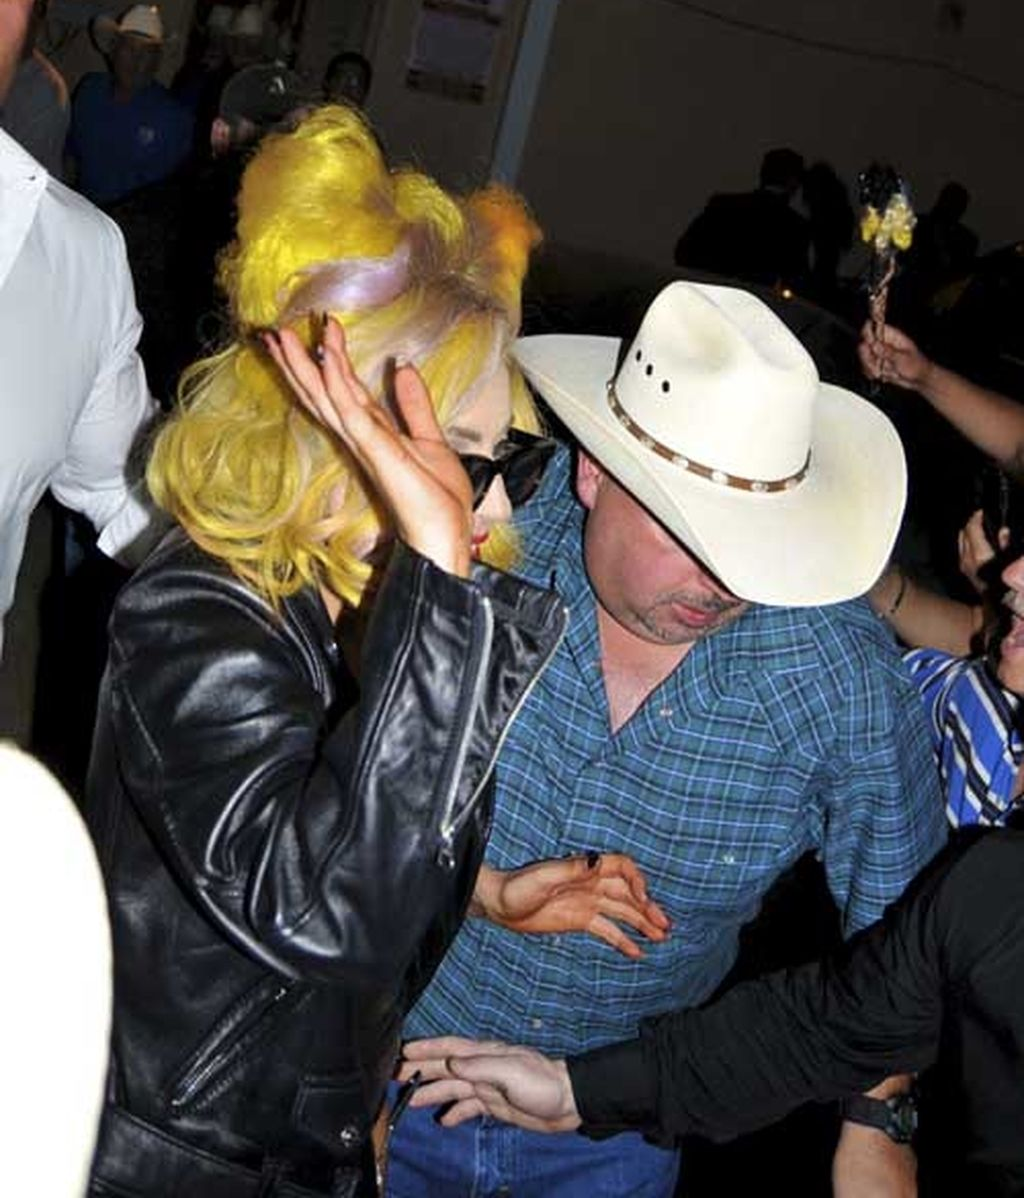 Lady Gaga irrumpe por sorpresa en un local de gay-western